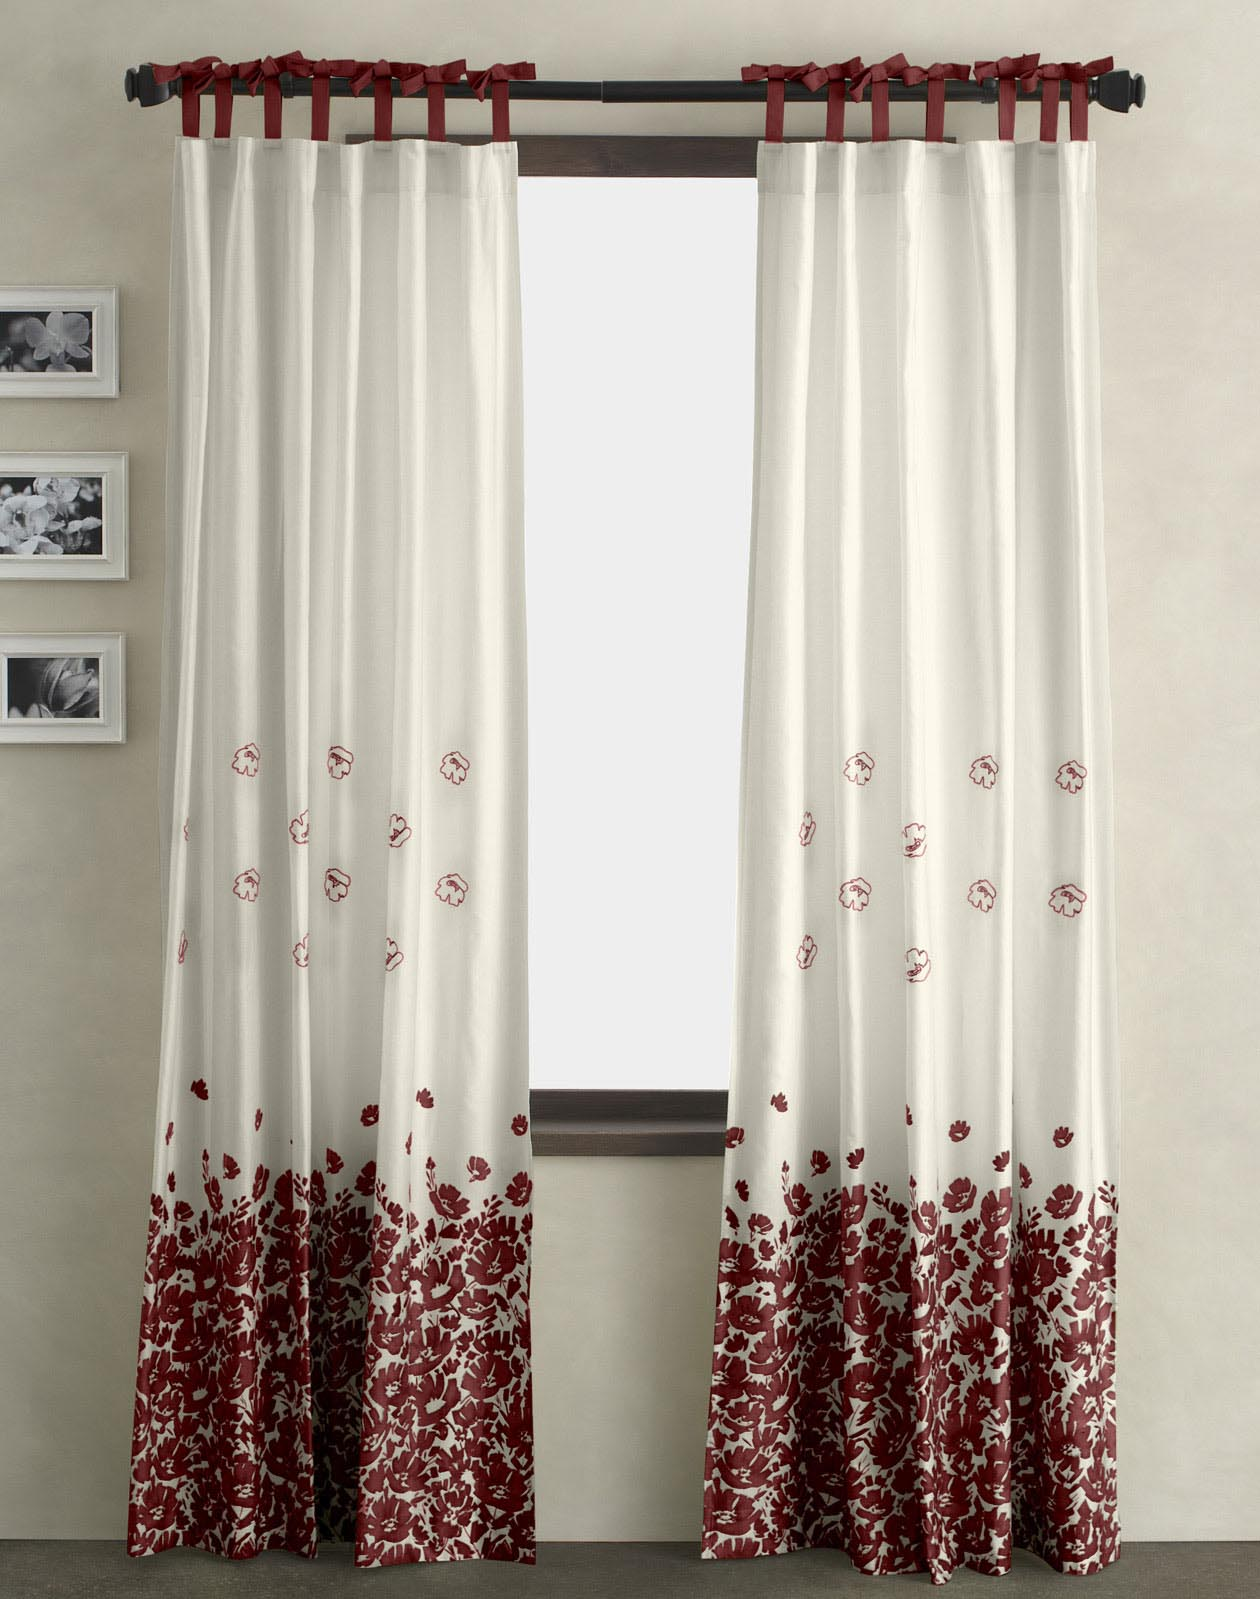 Red Valances for Bedroom